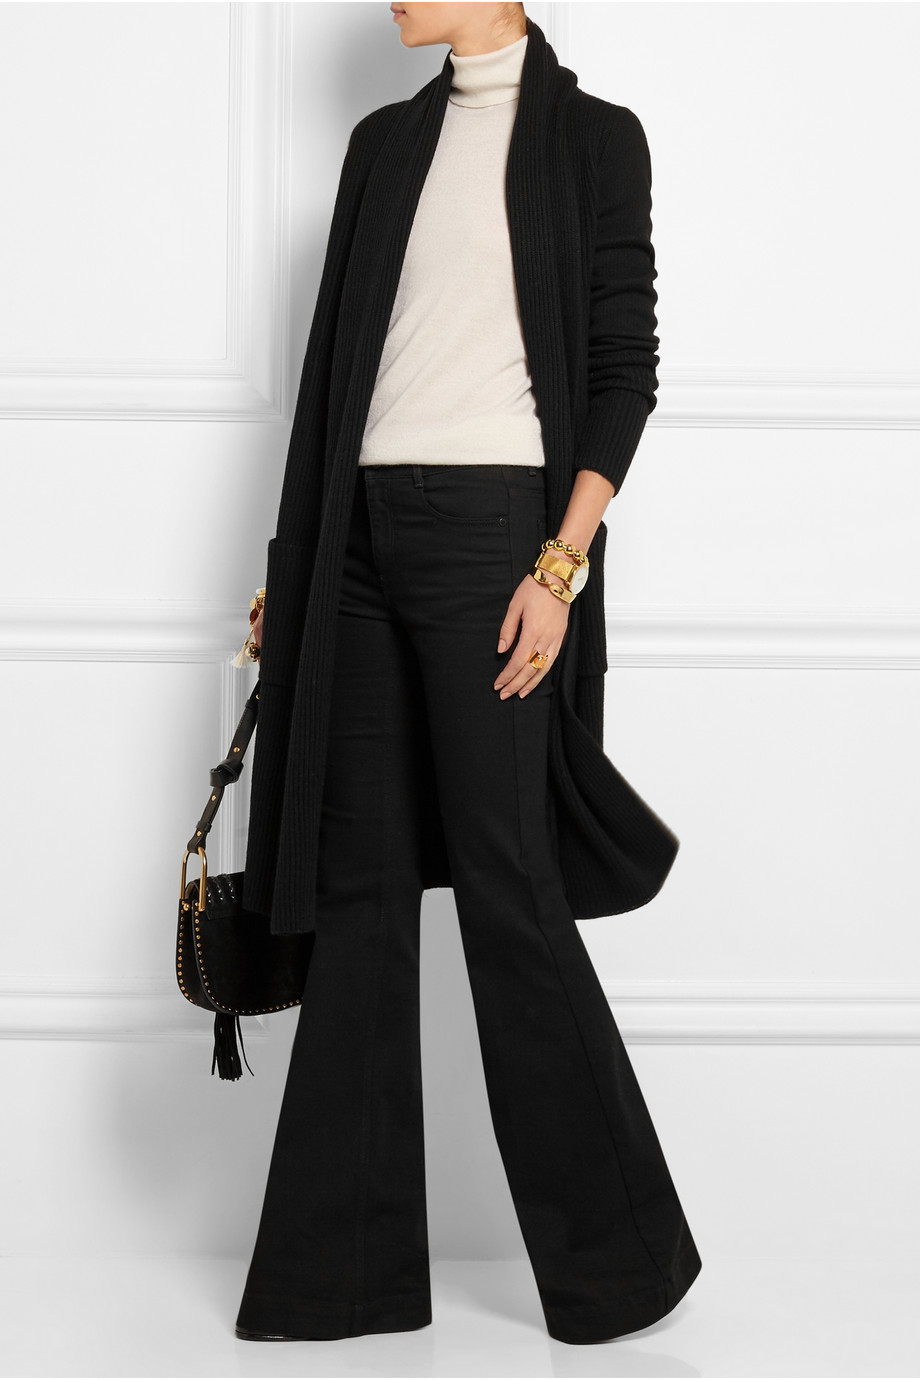 how to wear maxi cardigans donna karan